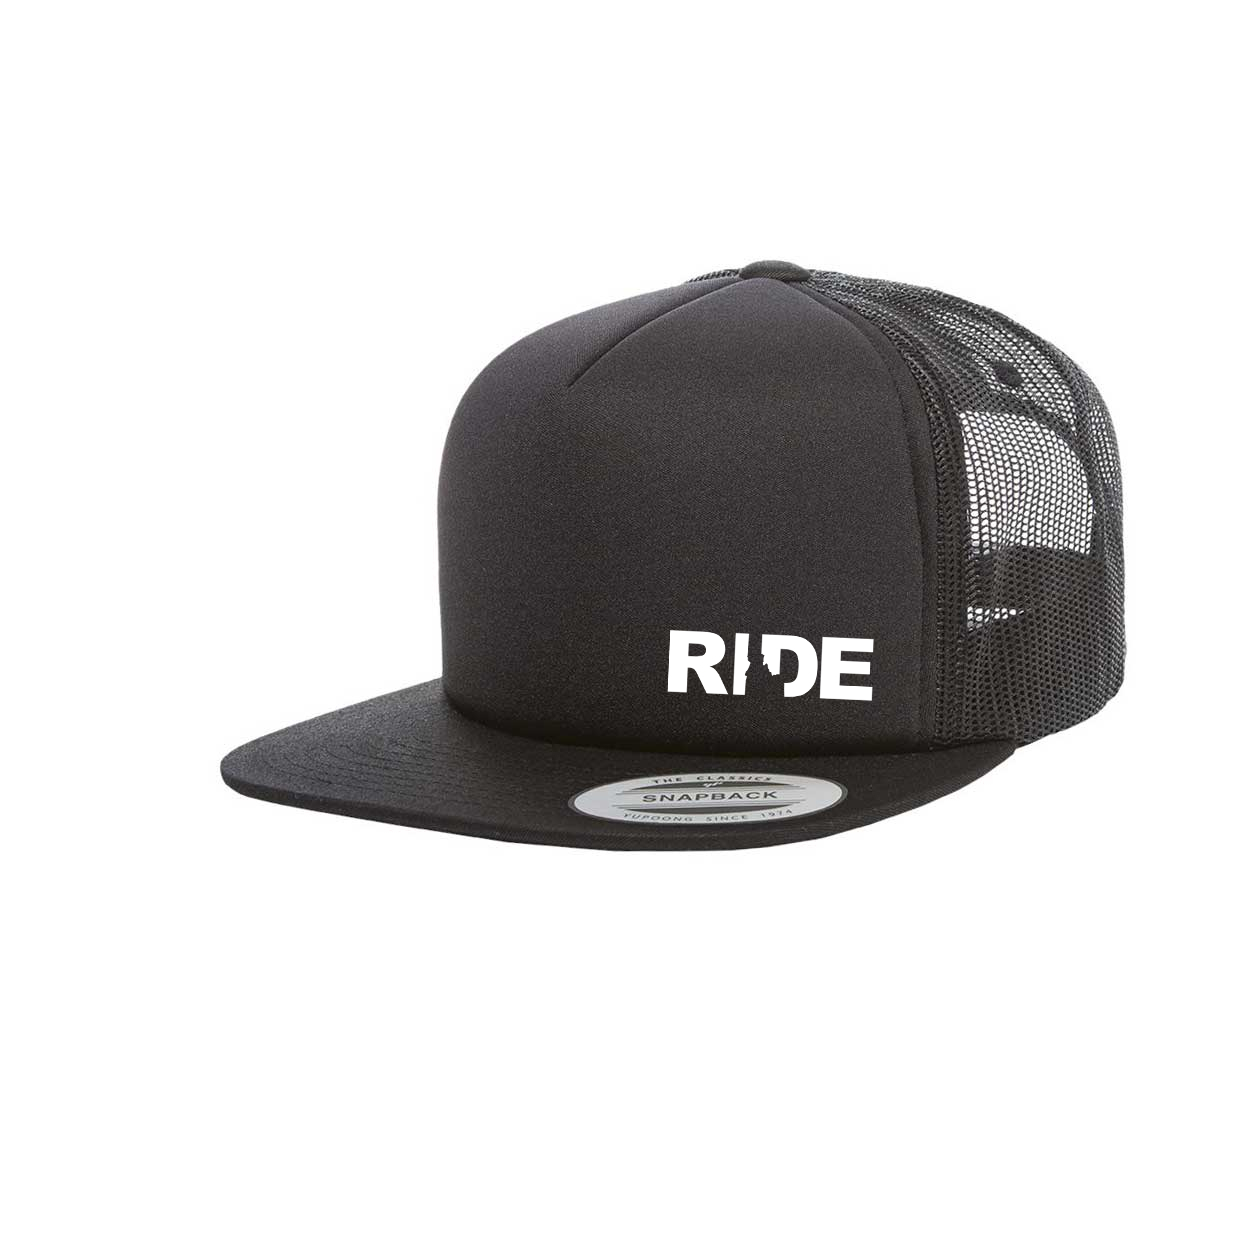 Ride Idaho Night Out Premium Foam Flat Brim Snapback Hat Black (White Logo)